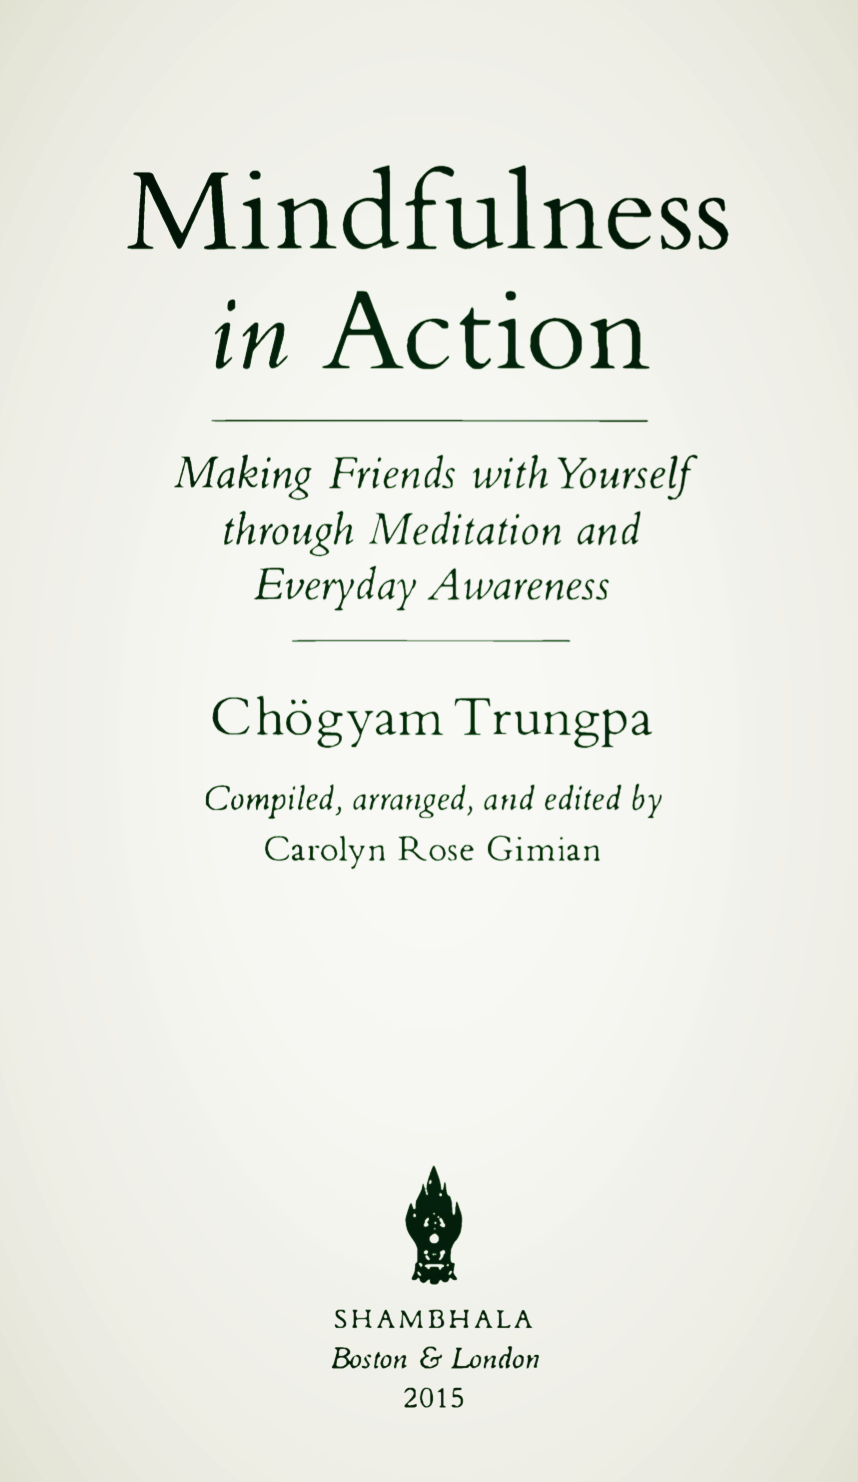 mindfulness-in-action-chogyam-trungpa